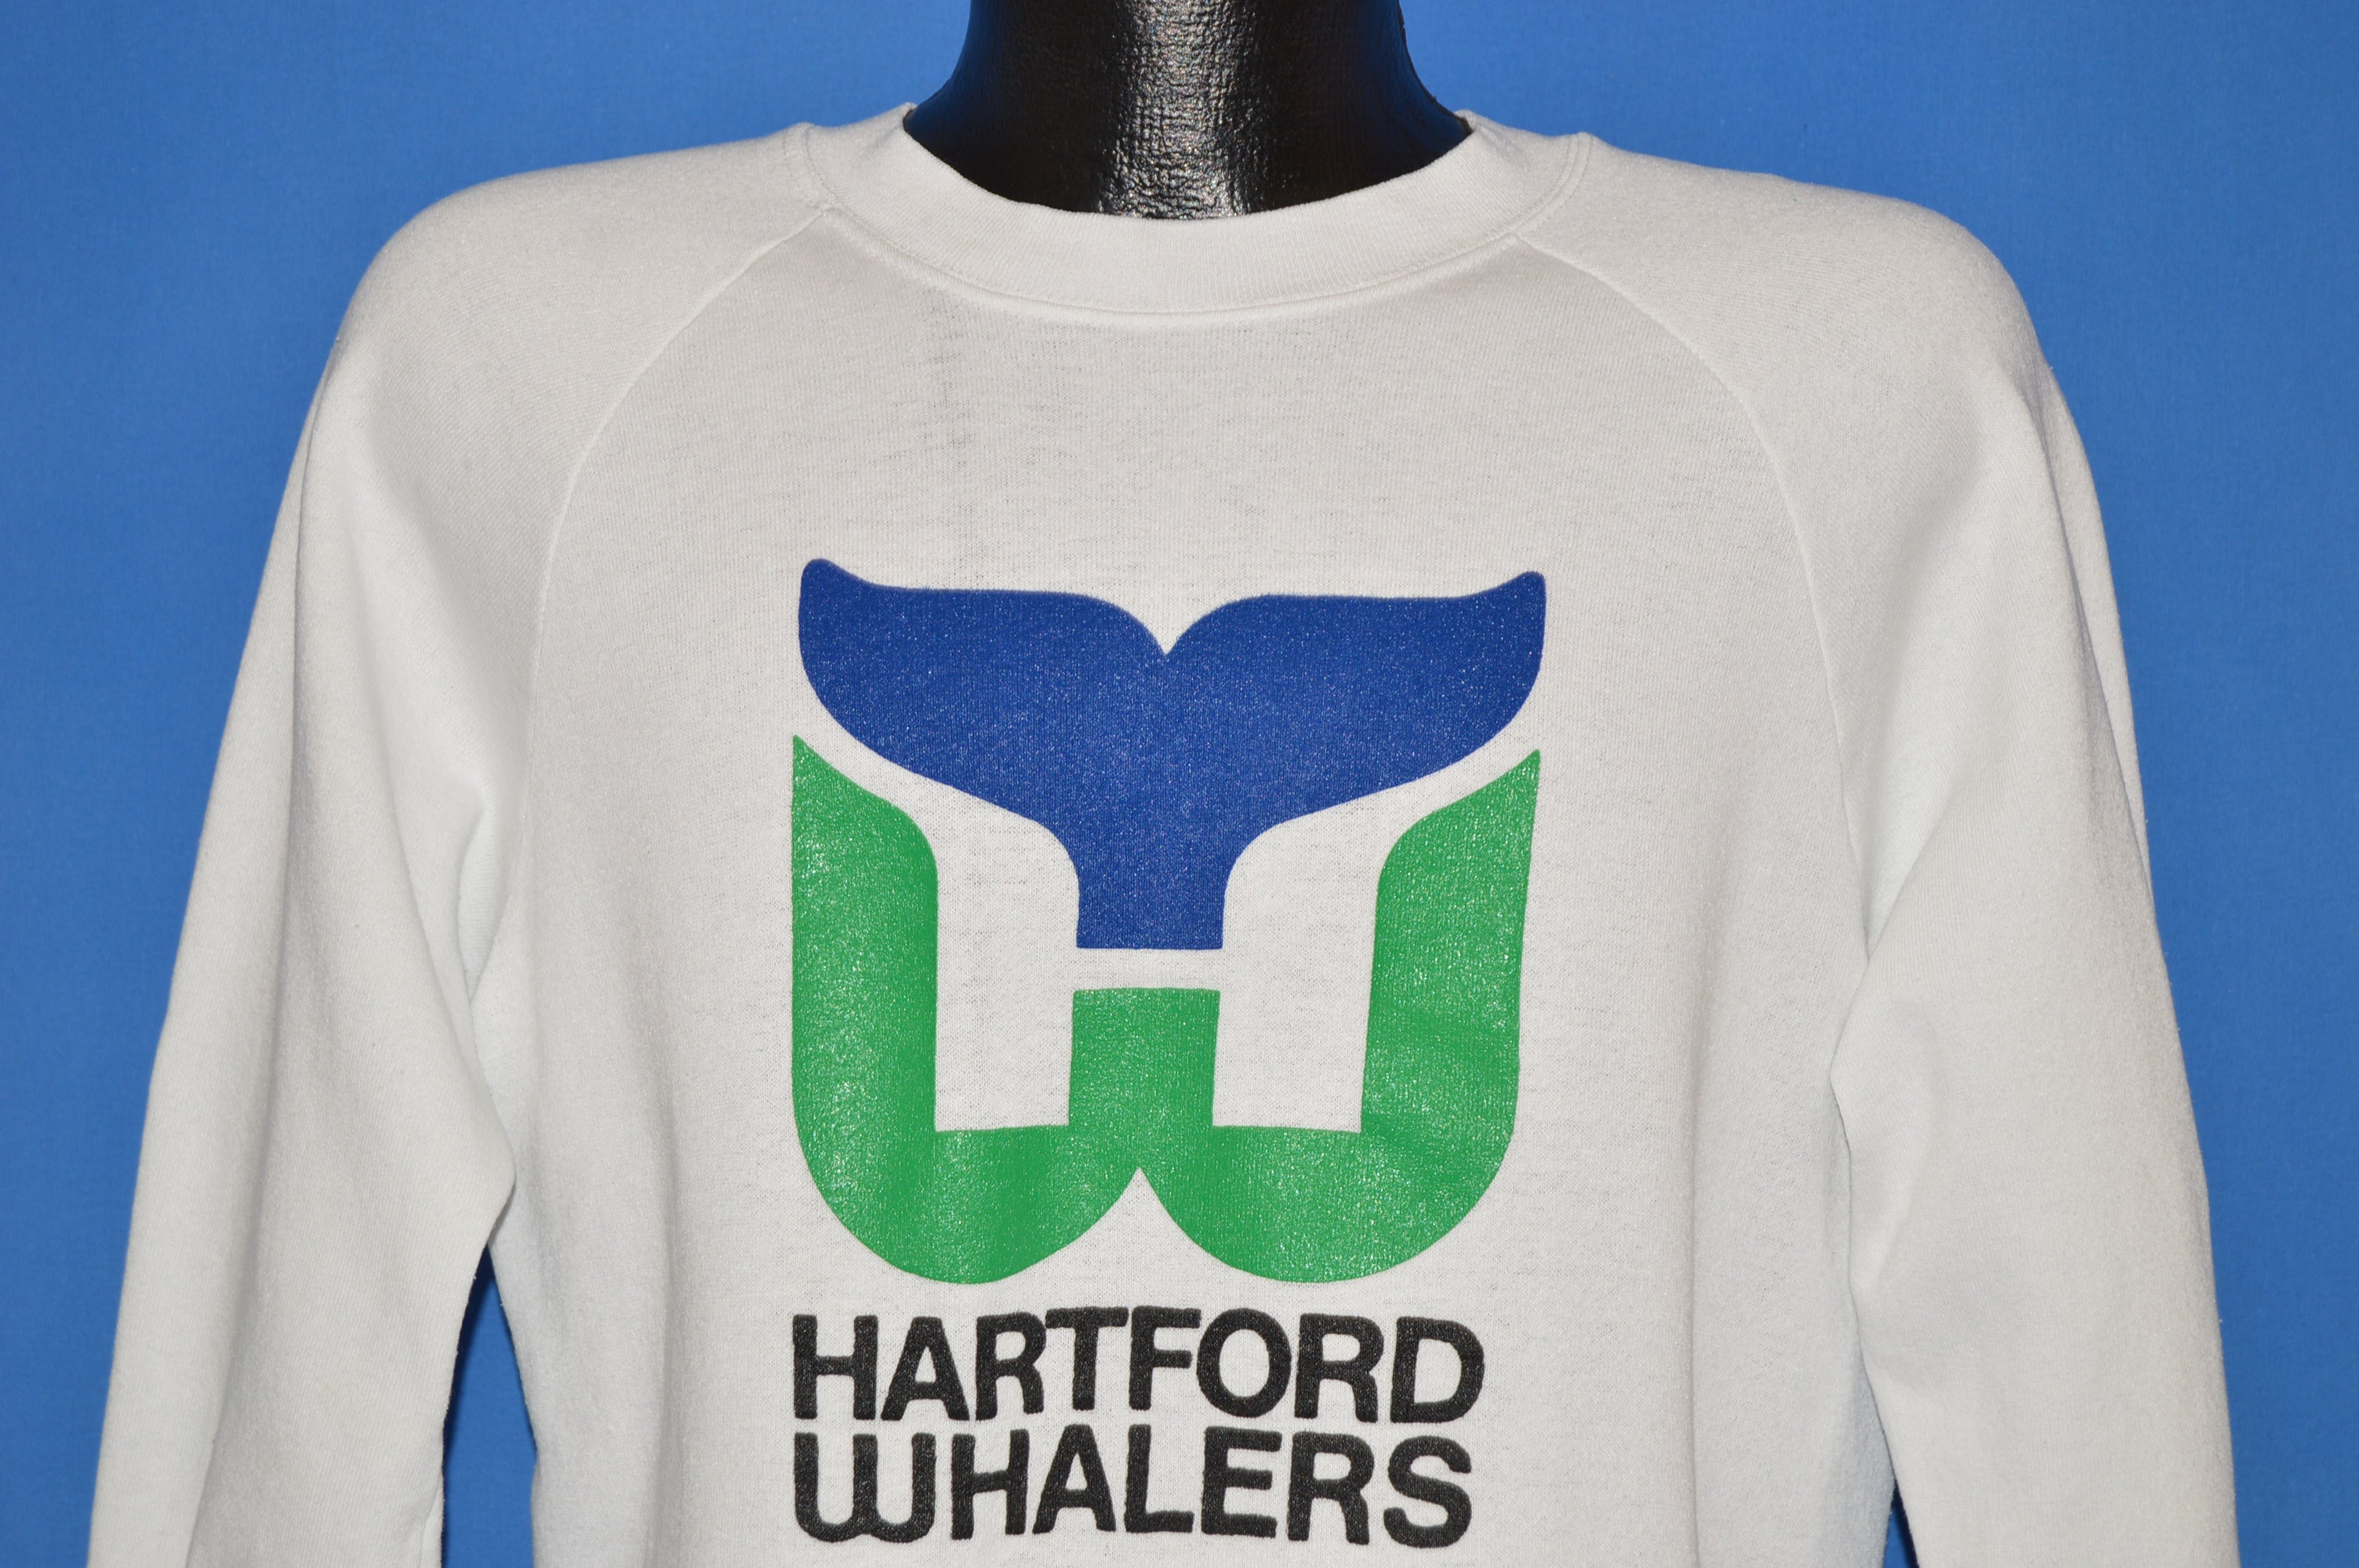 80s Hartford Whalers NHL Logo Sweatshirt Large - The Captains Vintage a77c67844